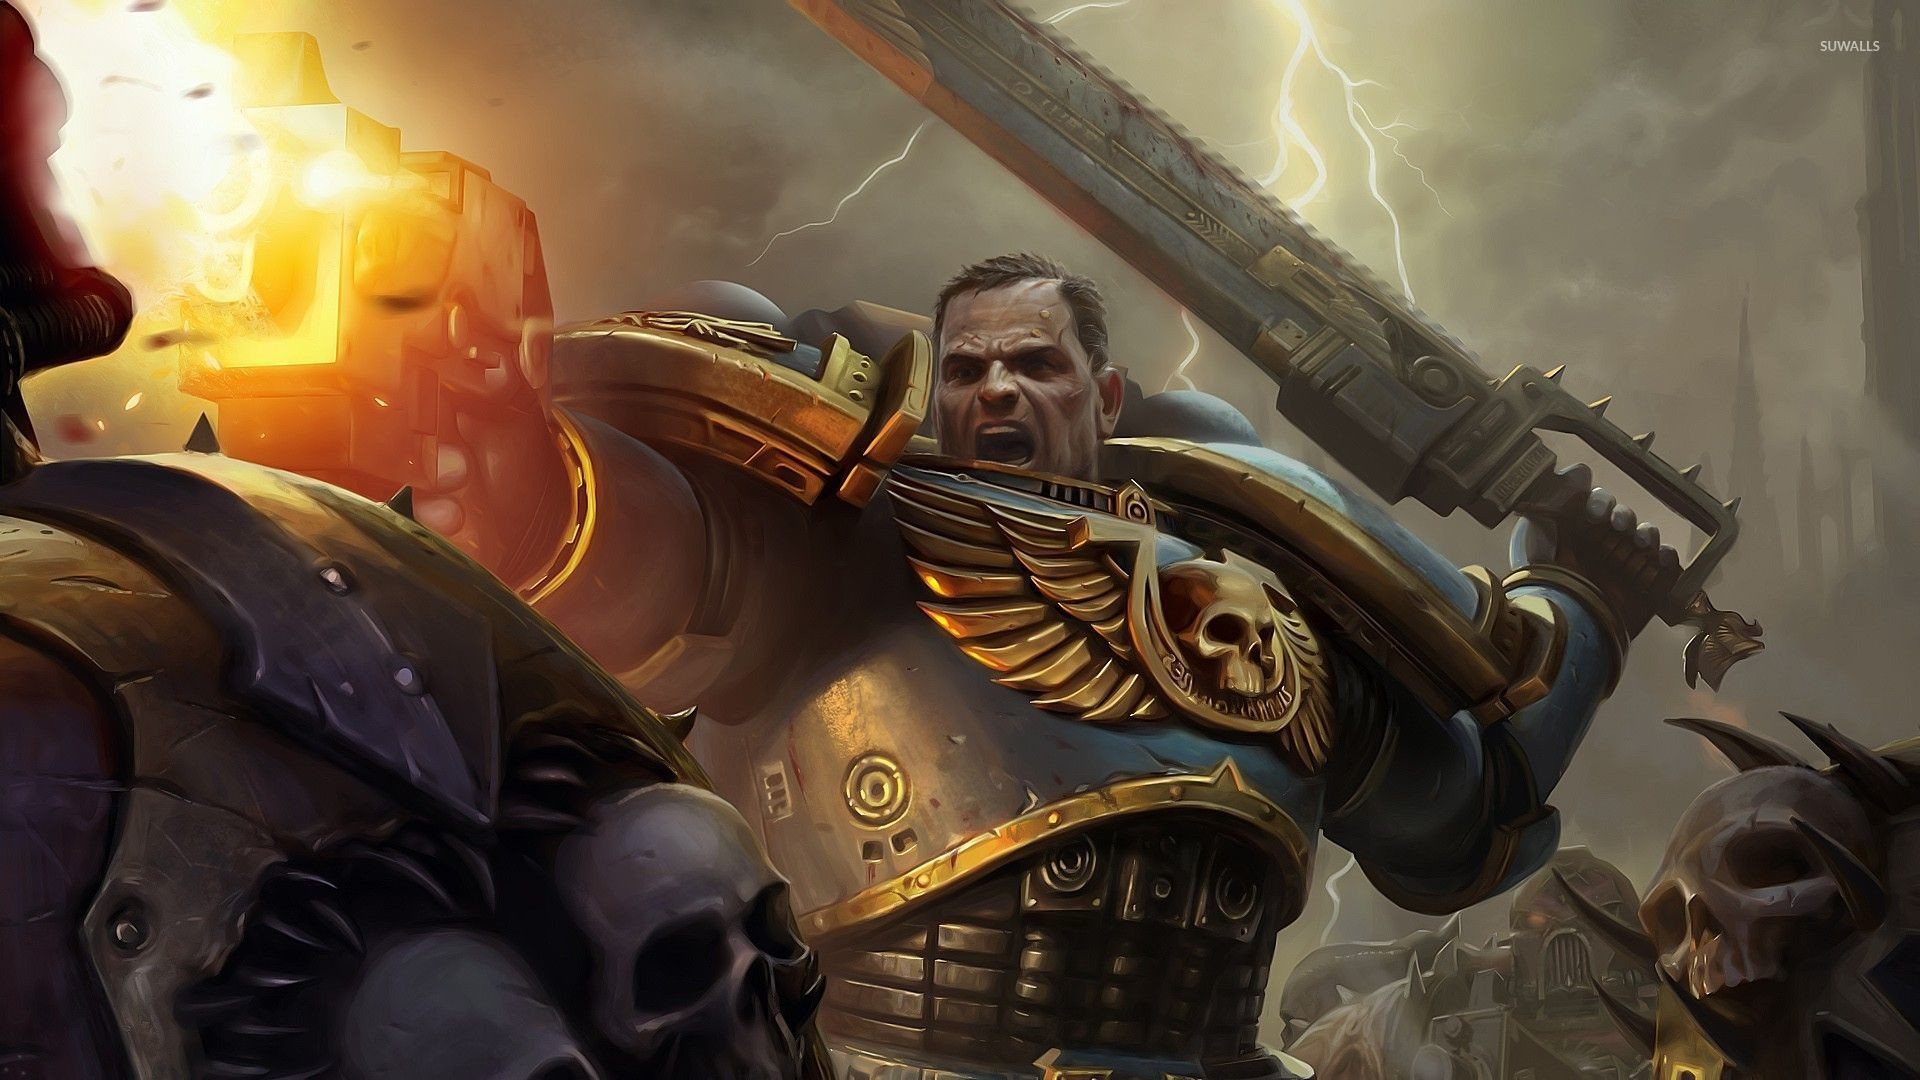 1920x1080 Space Marine Warhammer 40,000 wallpapers (38 Wallpapers)